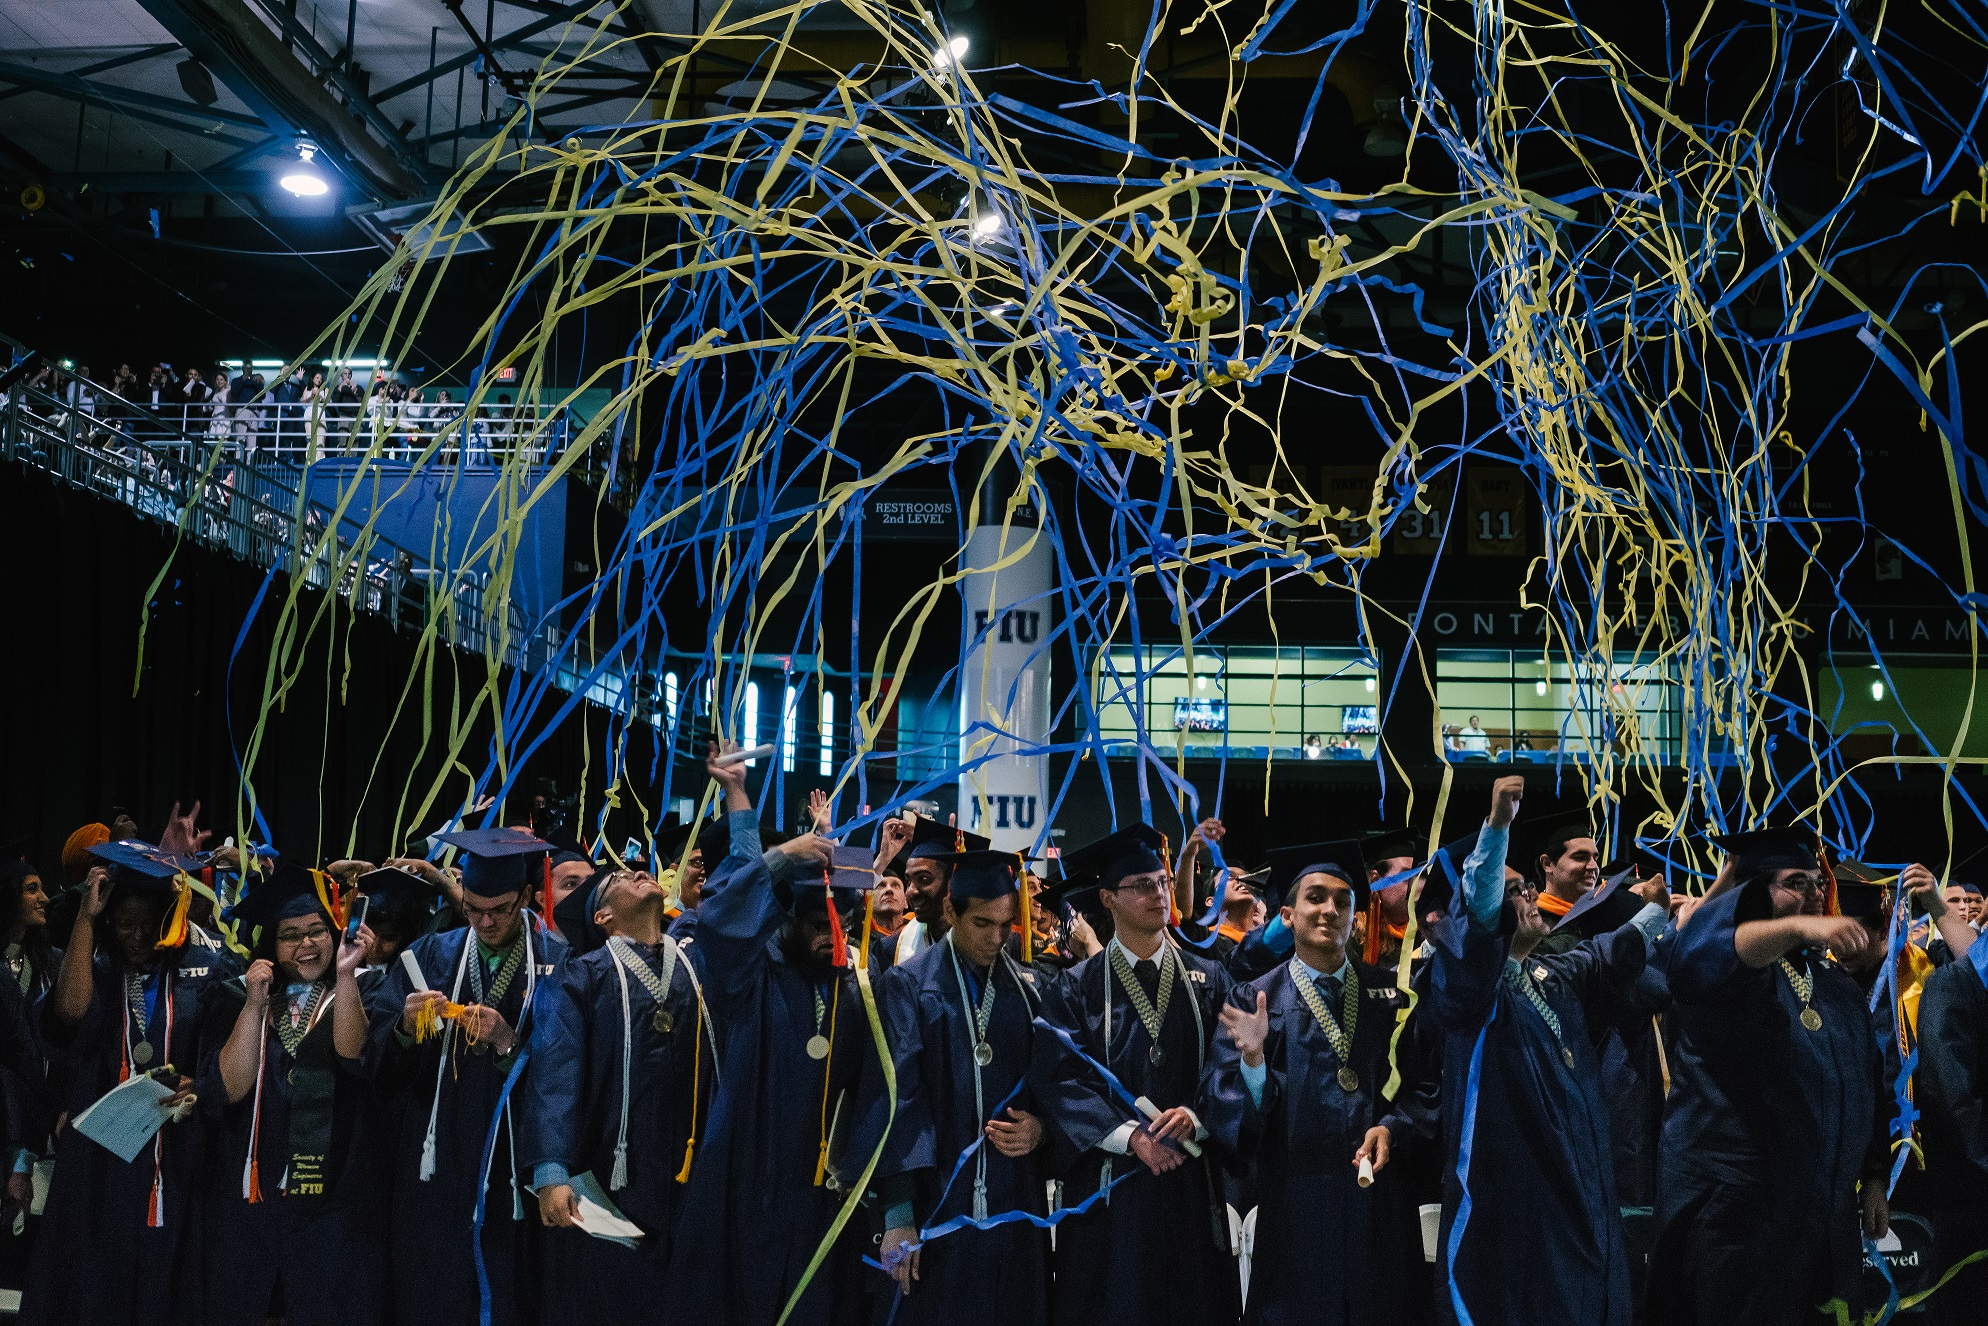 FIU Summer 2017 graduates overcome challenges, change lives